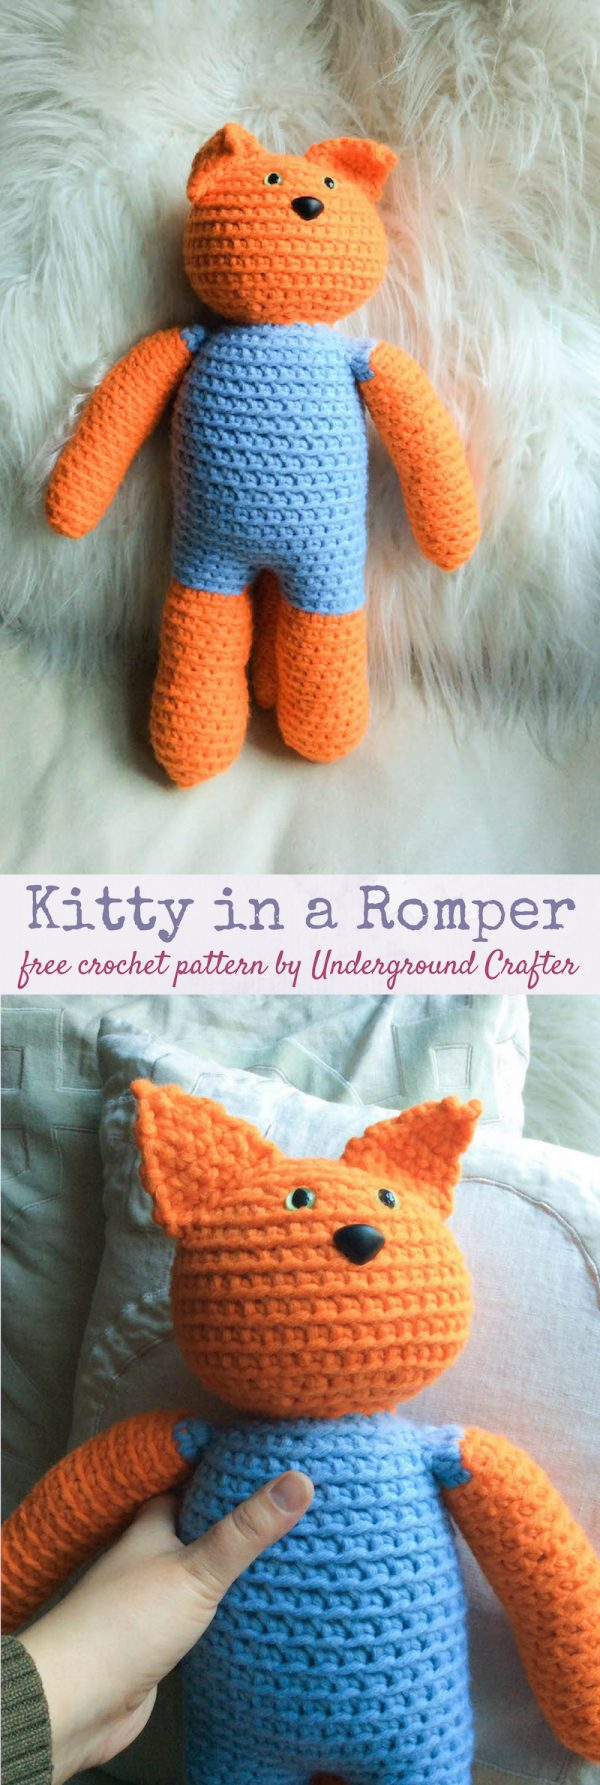 Free crochet pattern: Kitty in a Romper in Paintbox Yarns Wool Mix Chunky yarn stuffed with Fairfield Poly-Fil Royal Silk Fiber Fill by Underground Crafter